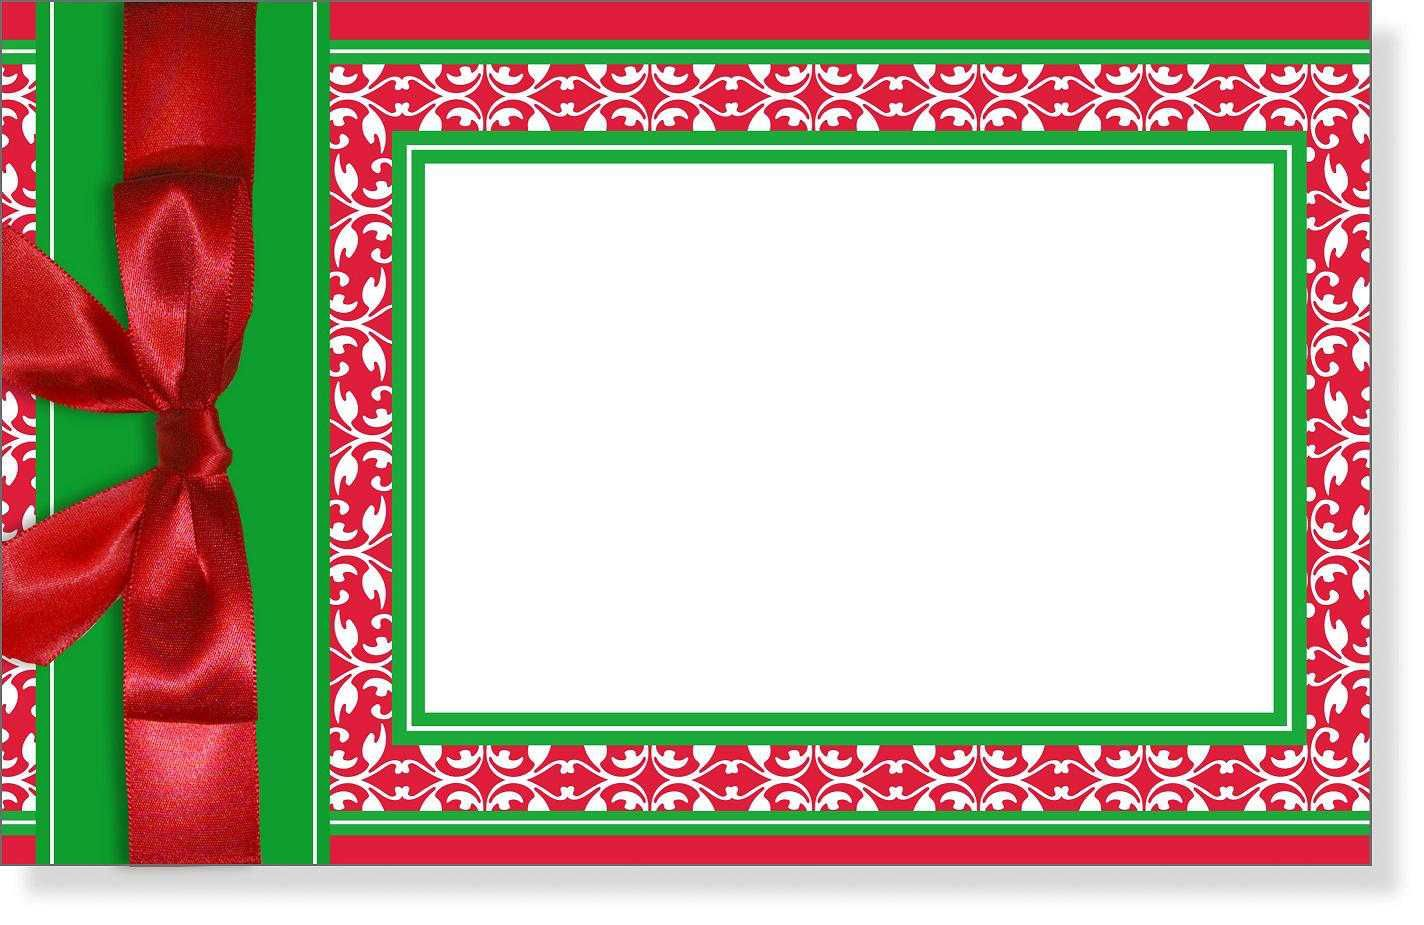 Related image  Christmas invitations template, Holiday party